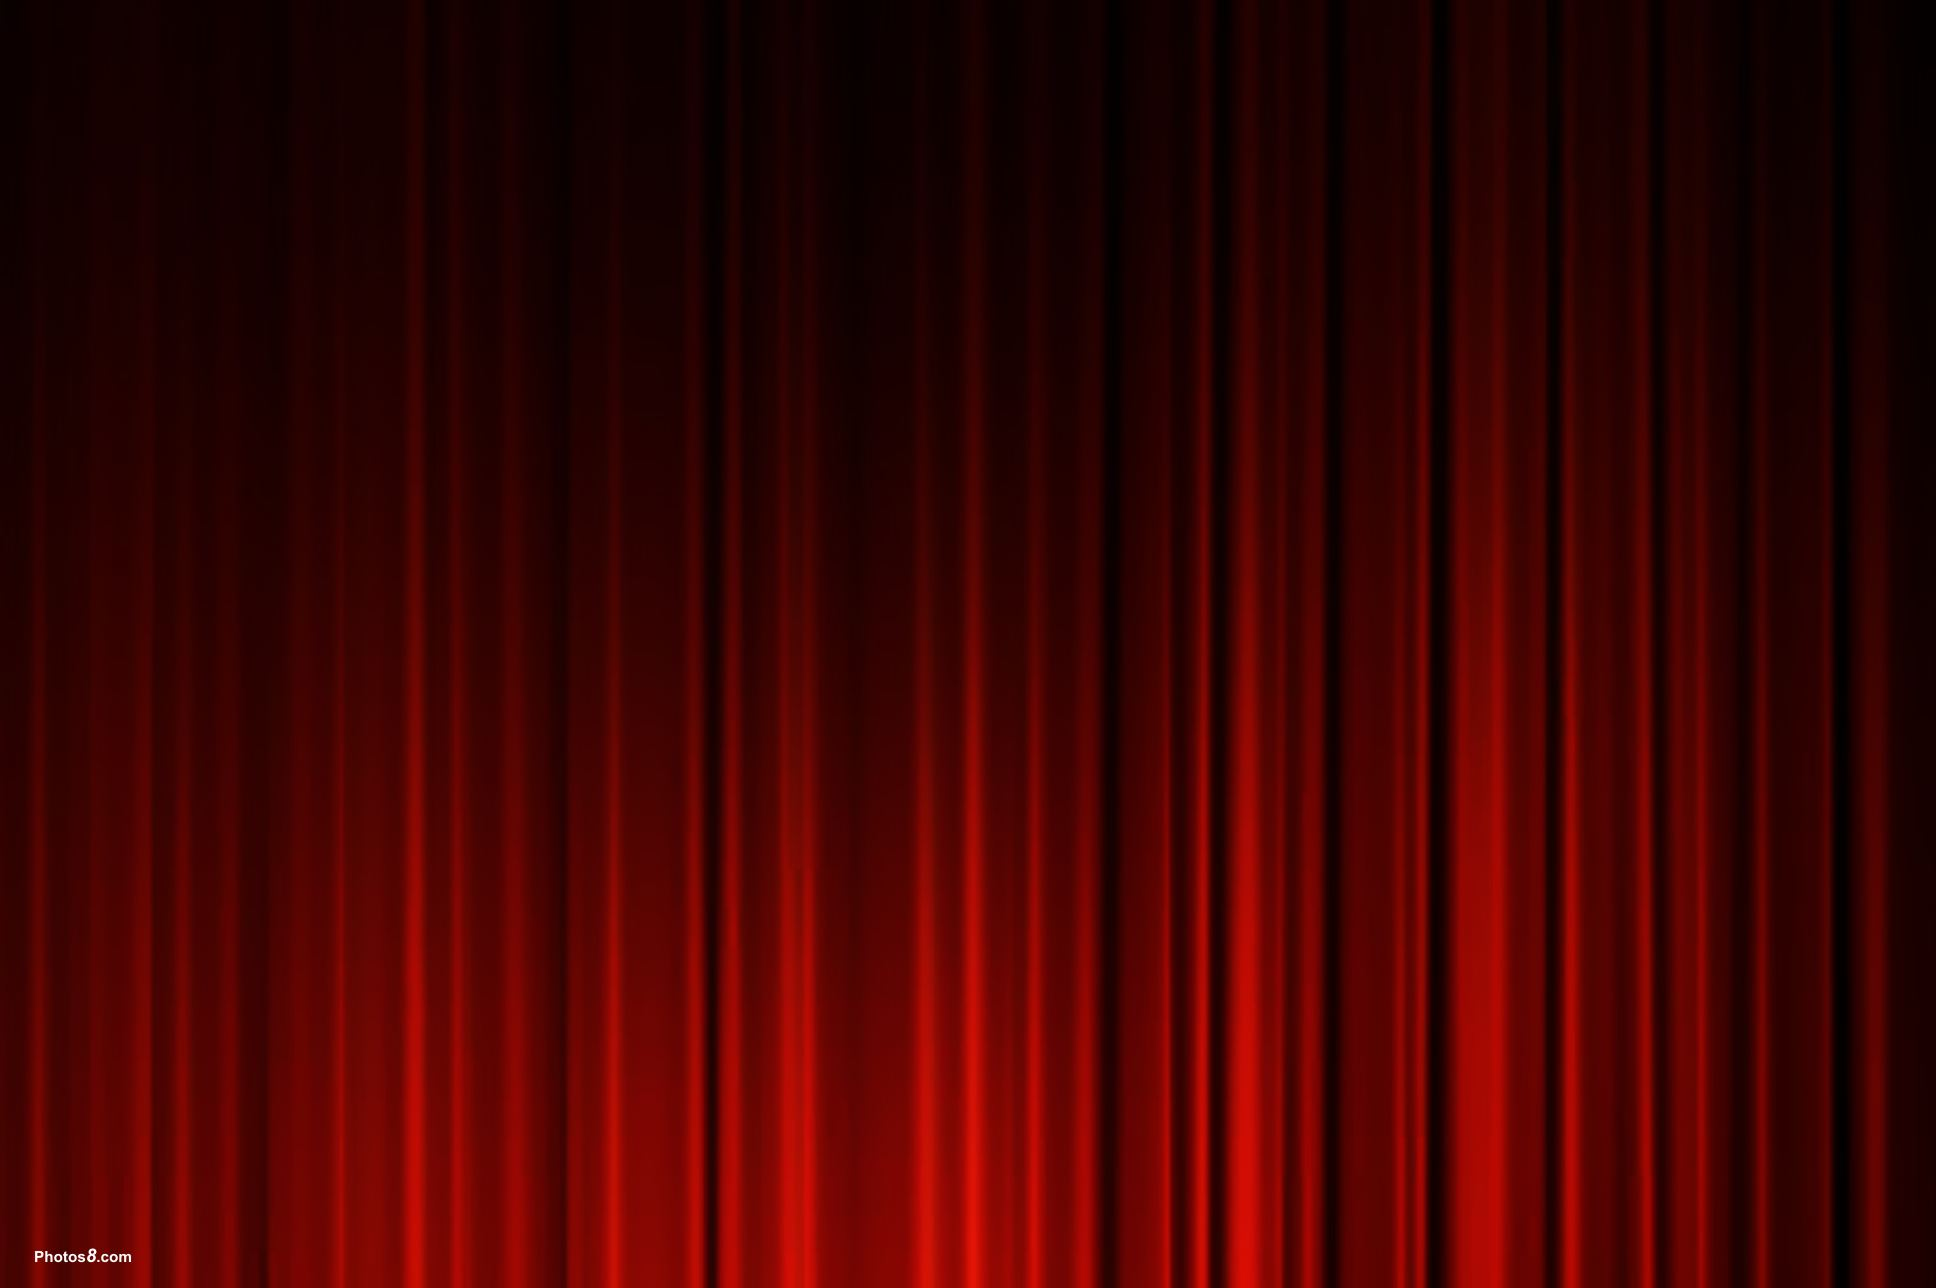 Red Velvet Theatre Curtains - Window Curtains  for Velvet Curtains Background  146hul